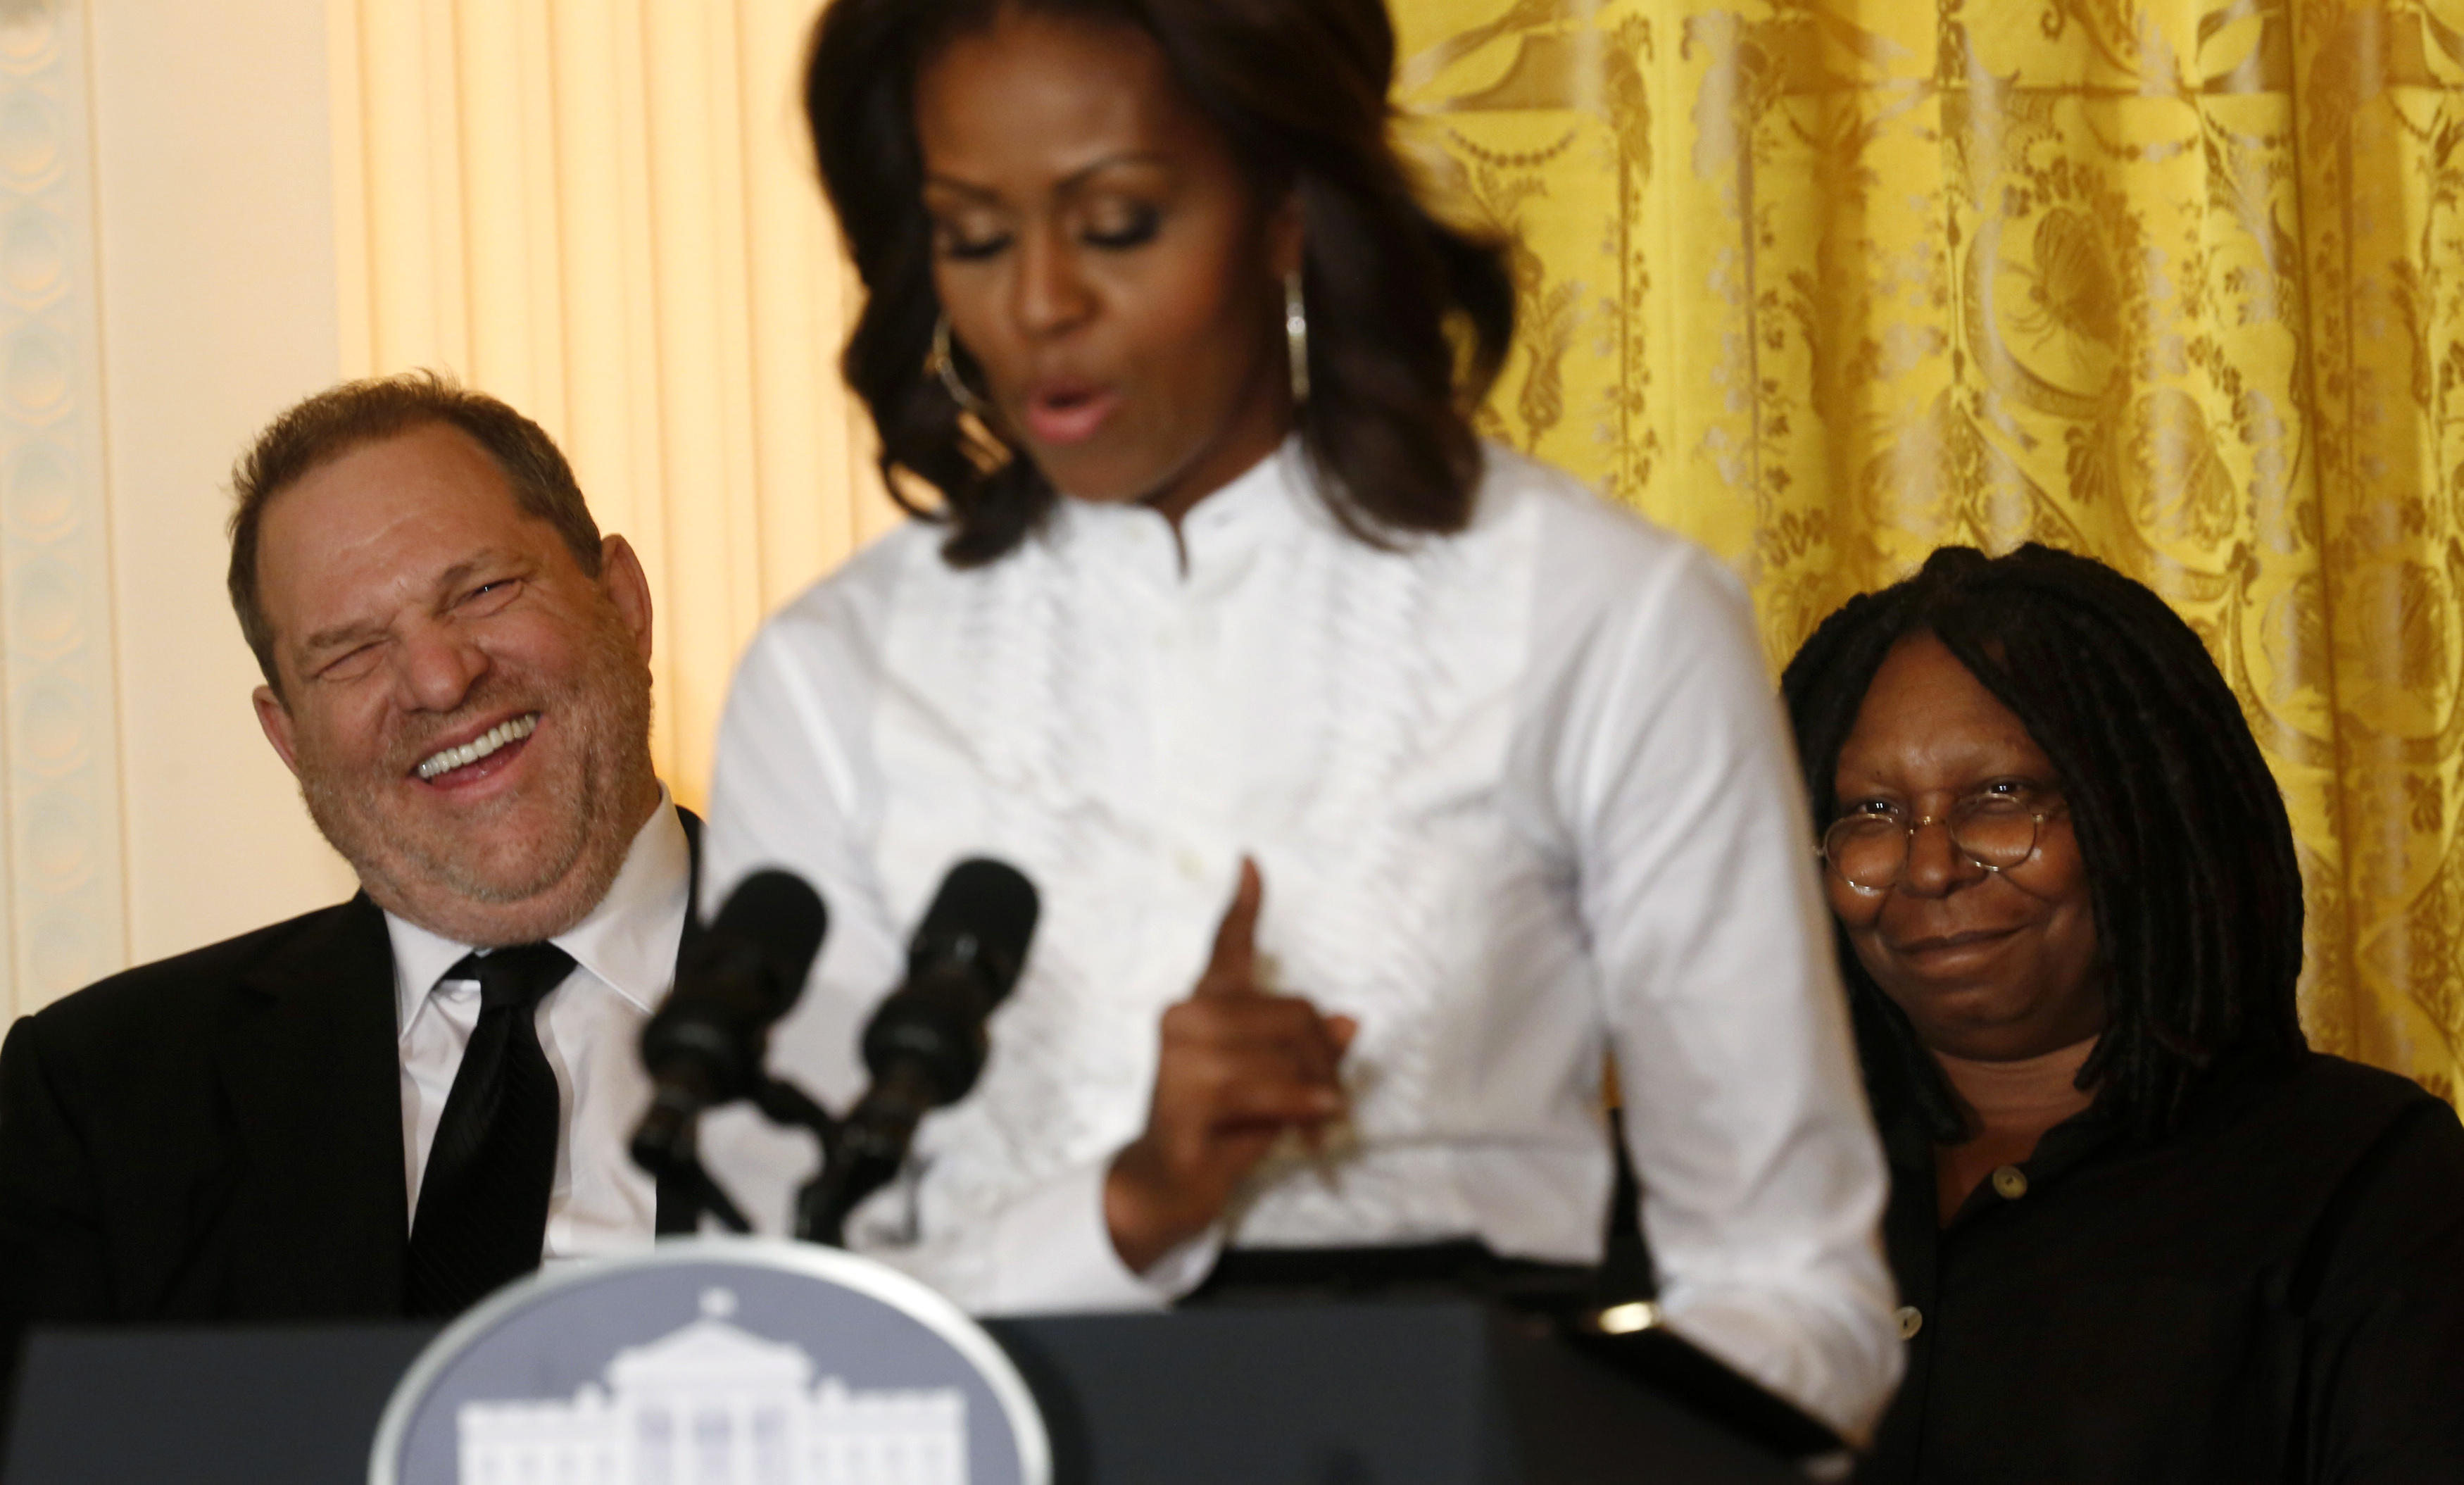 Film producer and studio executive Harvey Weinstein laughs at remarks directed at him by first lady Michelle Obama as she hosts a workshop at the White House for high school students about careers in film in Washington on Nov. 8, 2013.